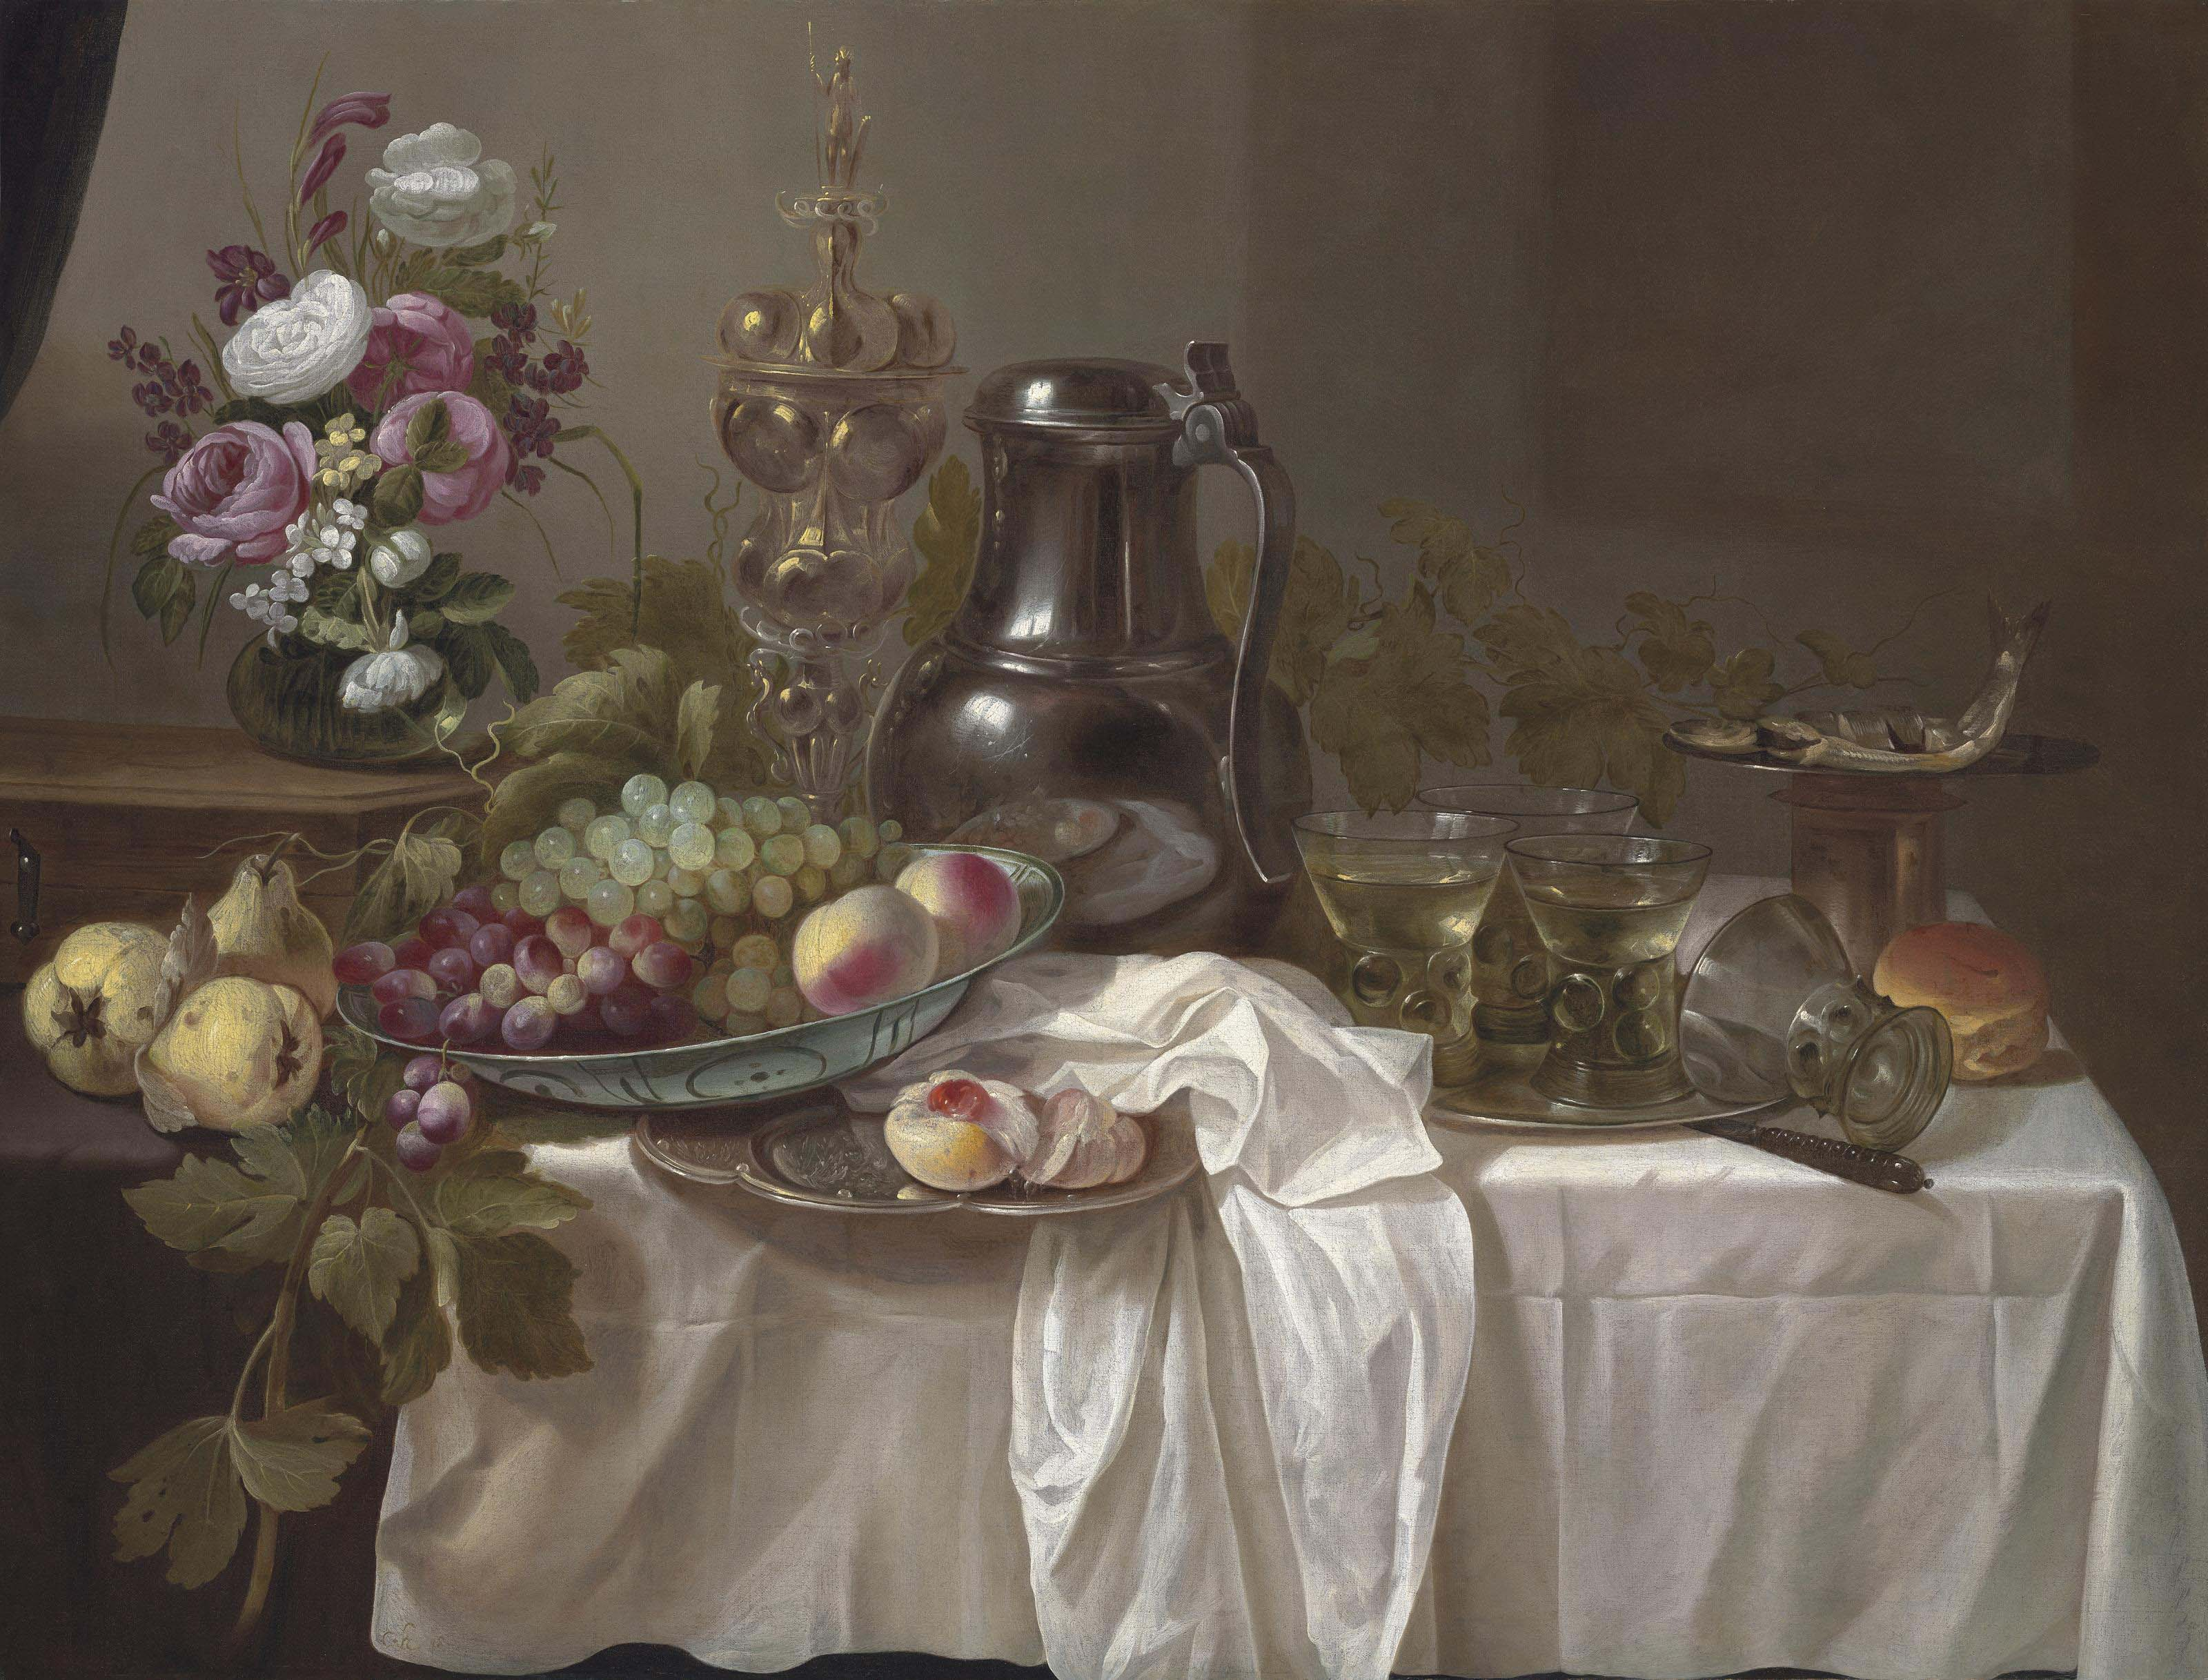 Grapes and peaches in a Wan-Li porcelain bowl, roemers on a pewter platter, peonies, roses and other flowers in a vase on a wooden box, with pears, a jug, a silver gilt cup, bread, fish and a knife on a partially draped table